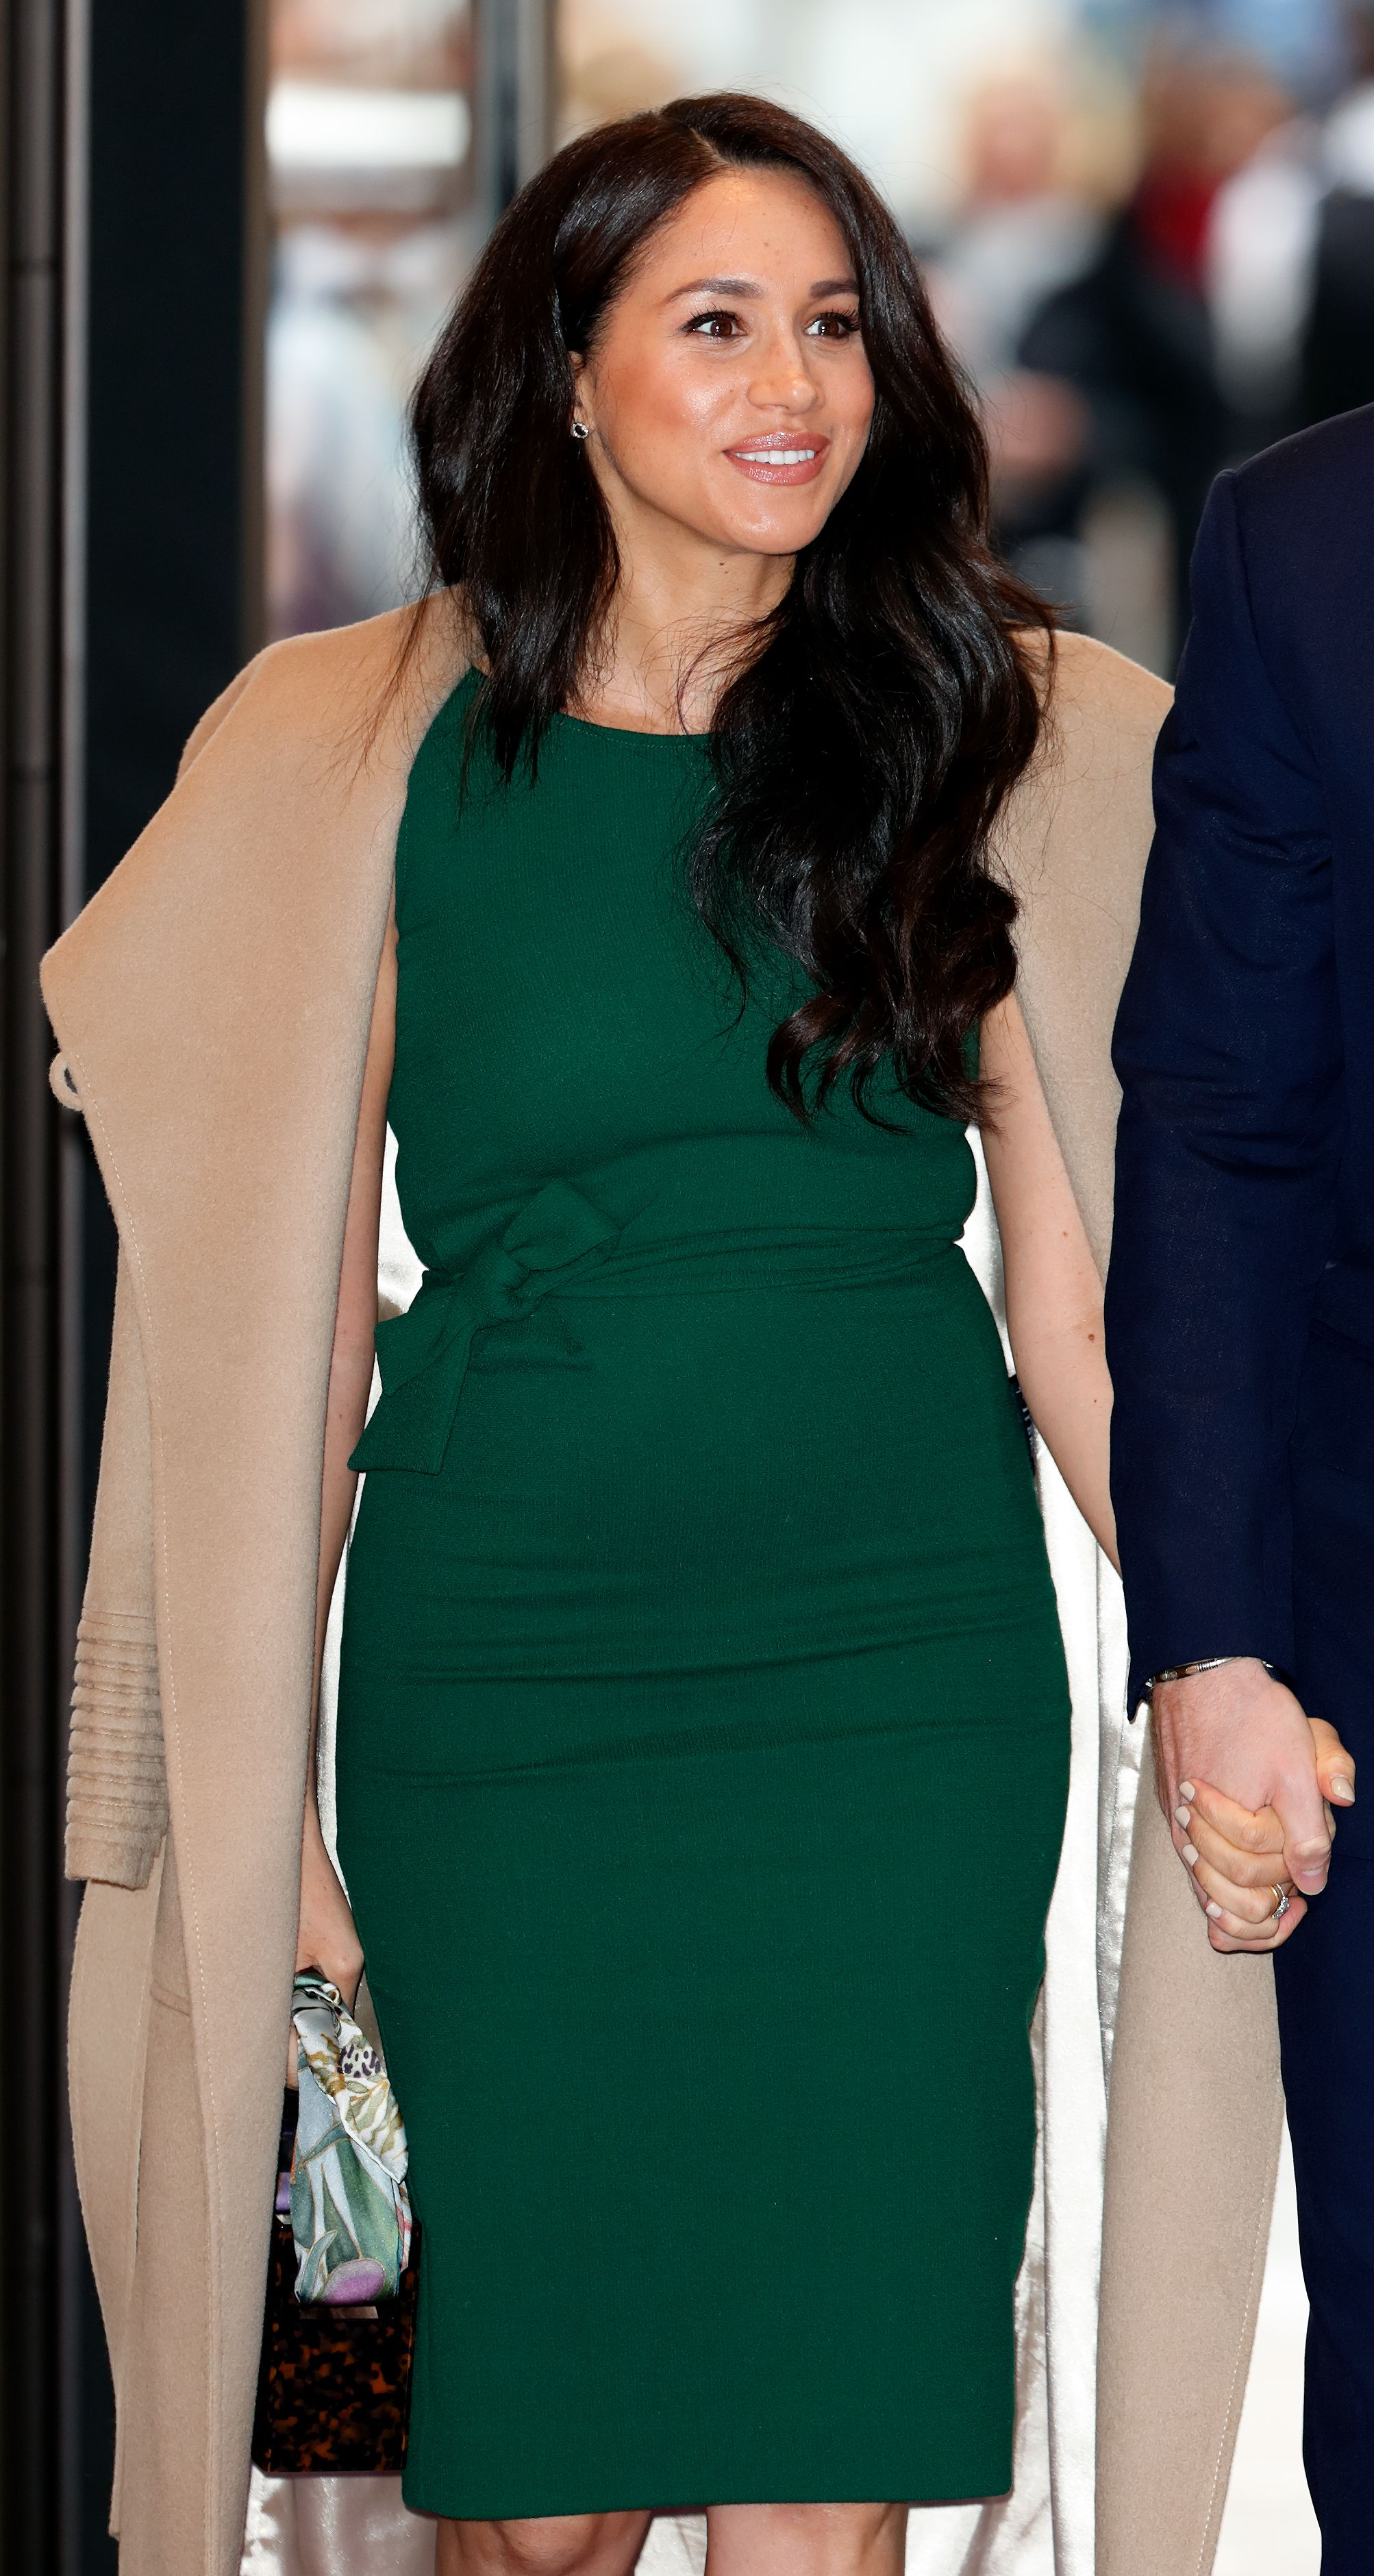 Meghan Markle at the WellChild awards at the Royal Lancaster Hotel on October 15, 2019 | Getty Images